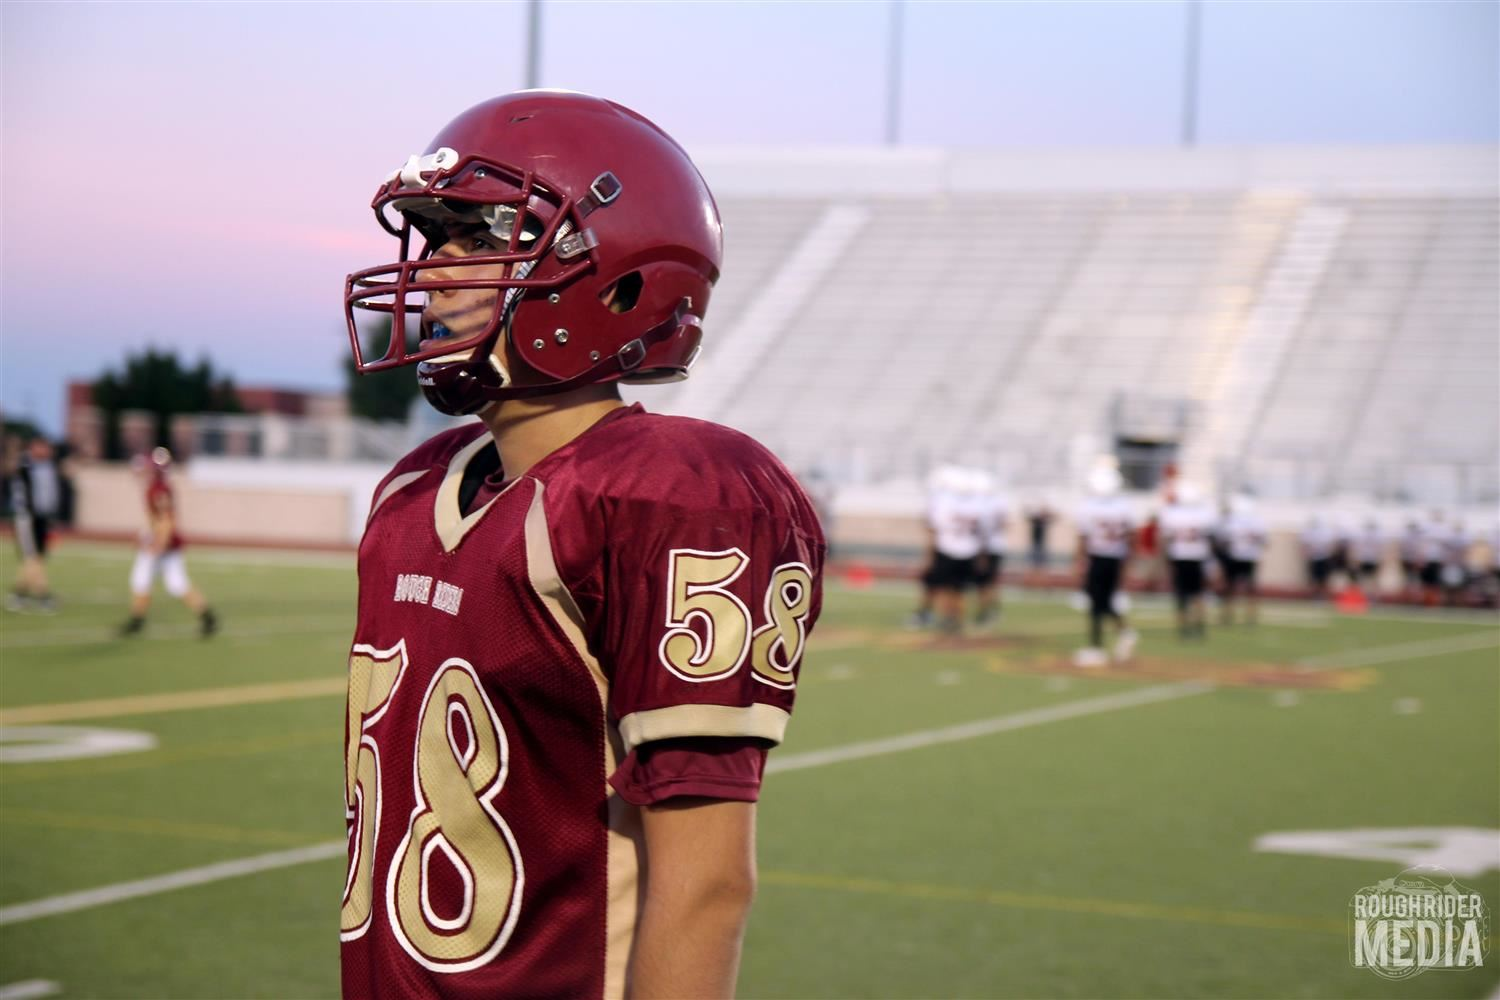 photo of SHS football player courtesy of Rough Rider Media